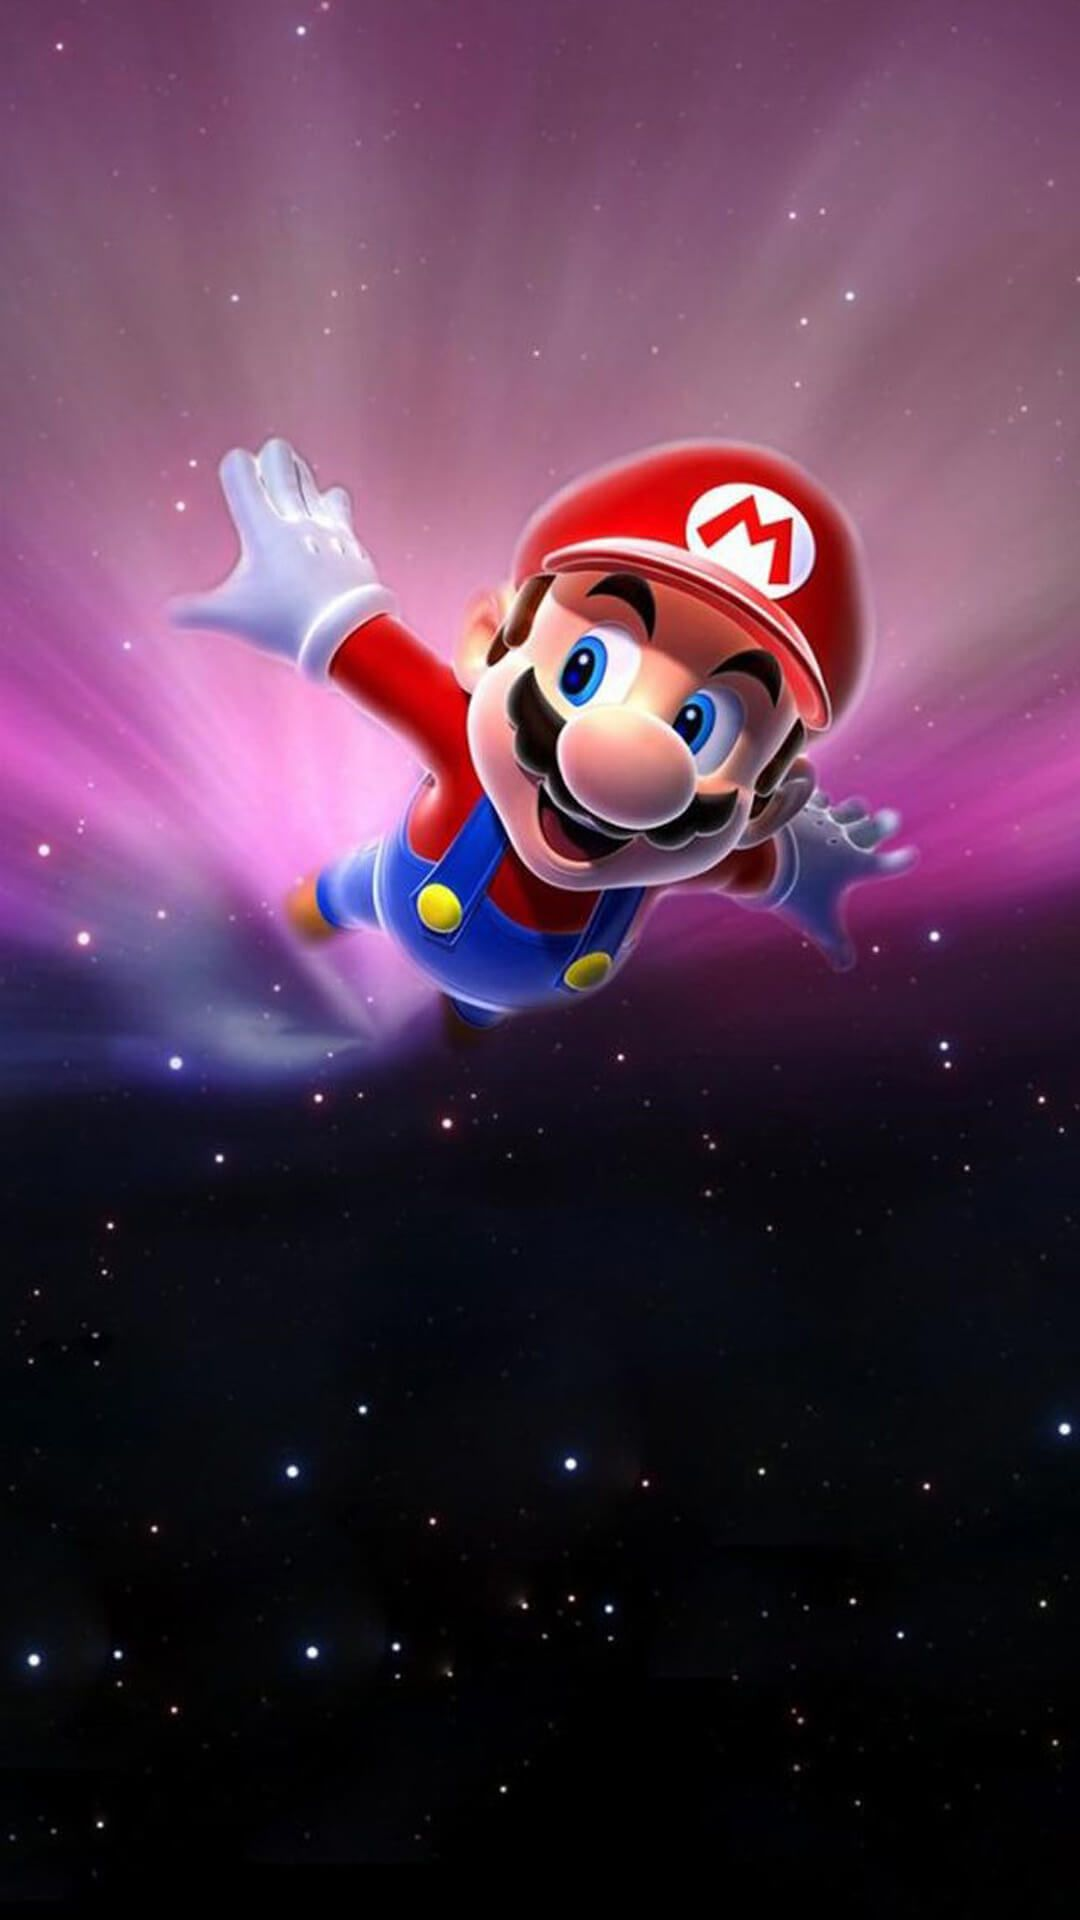 super mario flying iphone 7 plus wallpaper